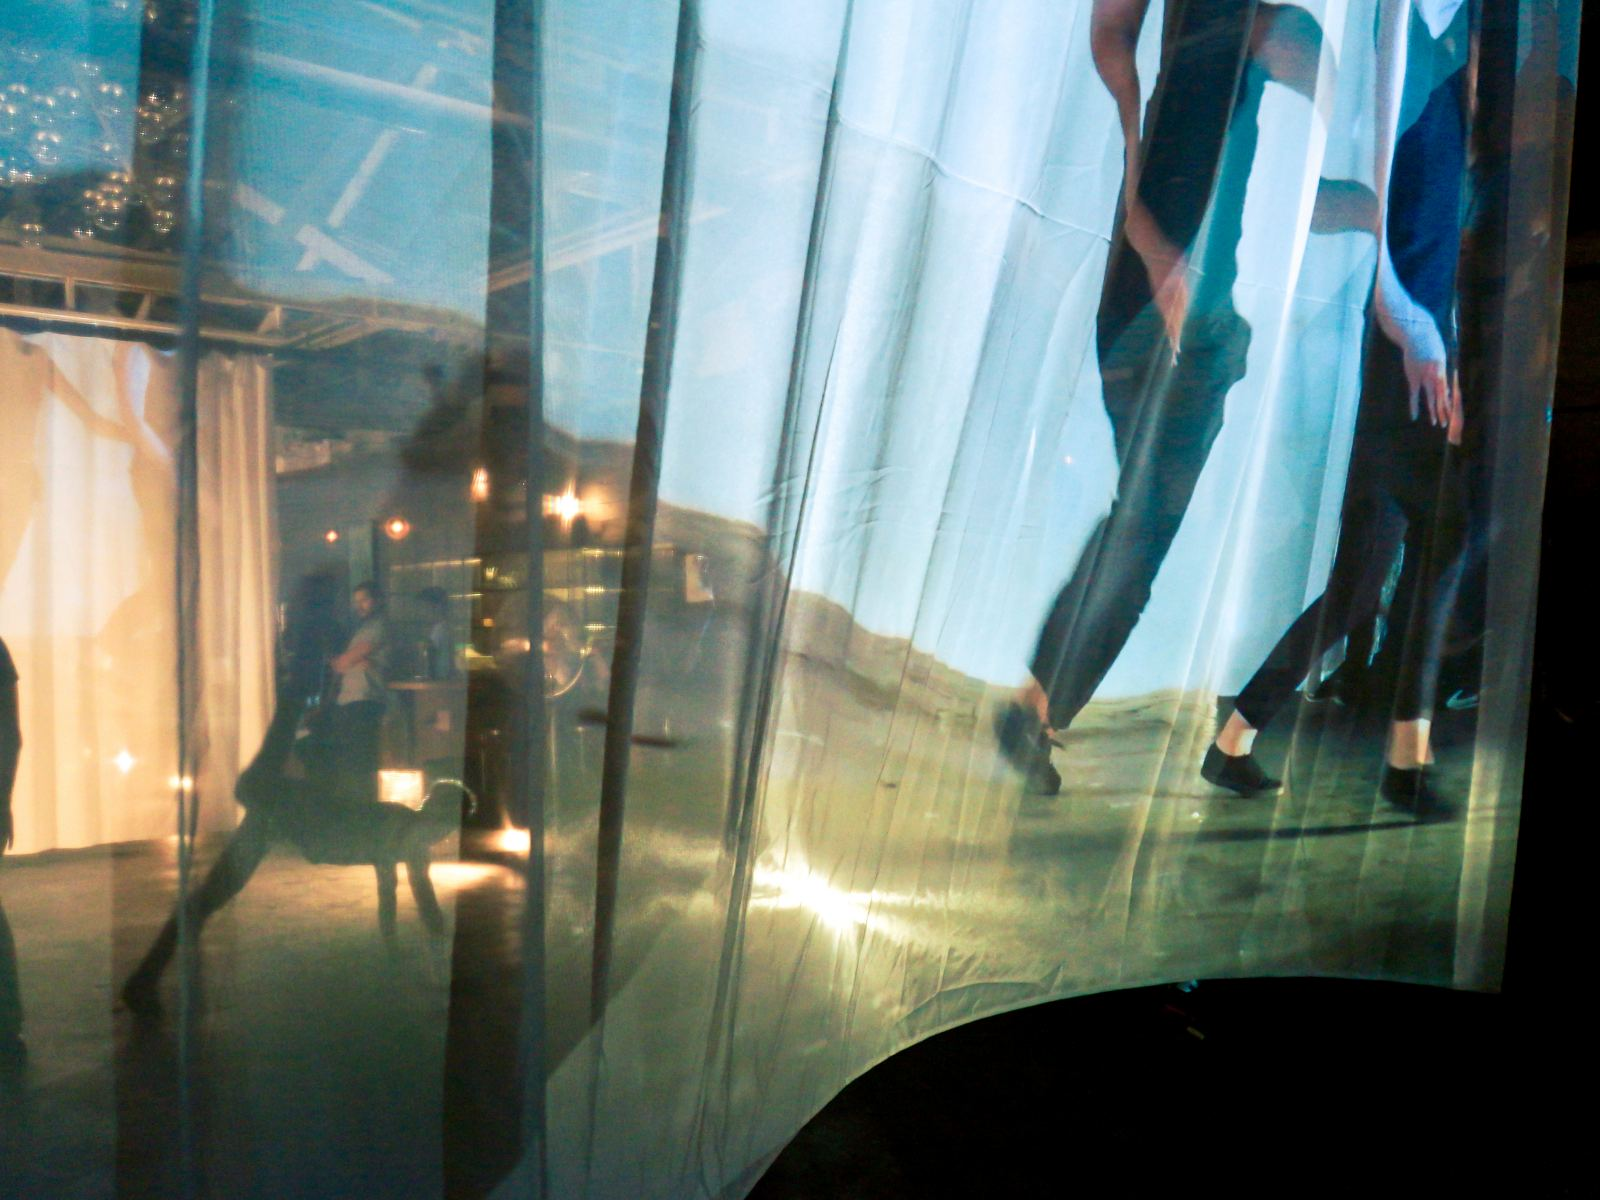 Sheer curtains reveal dancers beyond, as well as images of their movement.